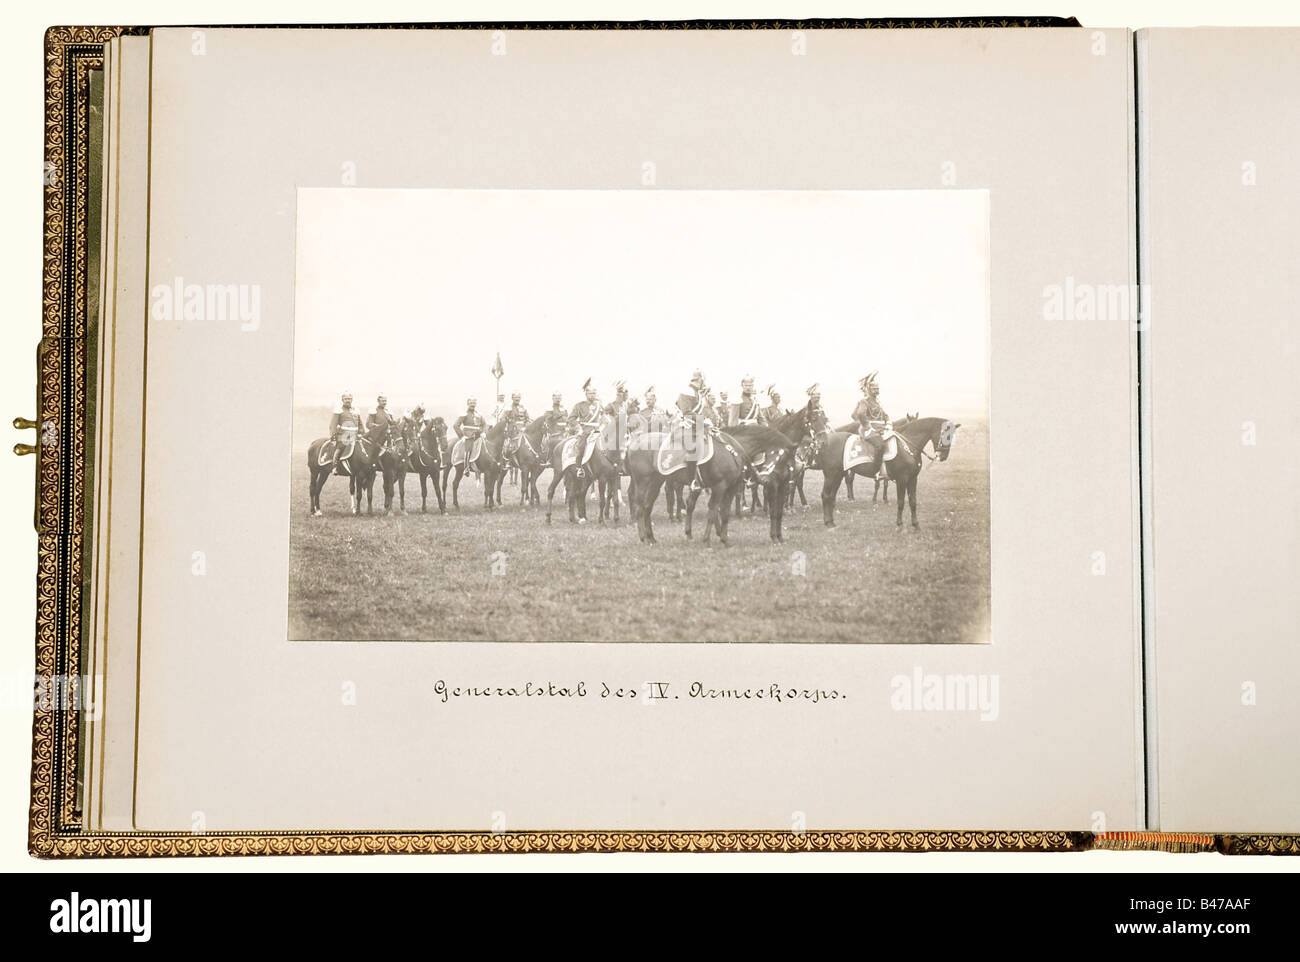 A photo album of the Imperial Parade at Merseburg, 4 September 1903. A lavish album with 33 large format photographs - Stock Image